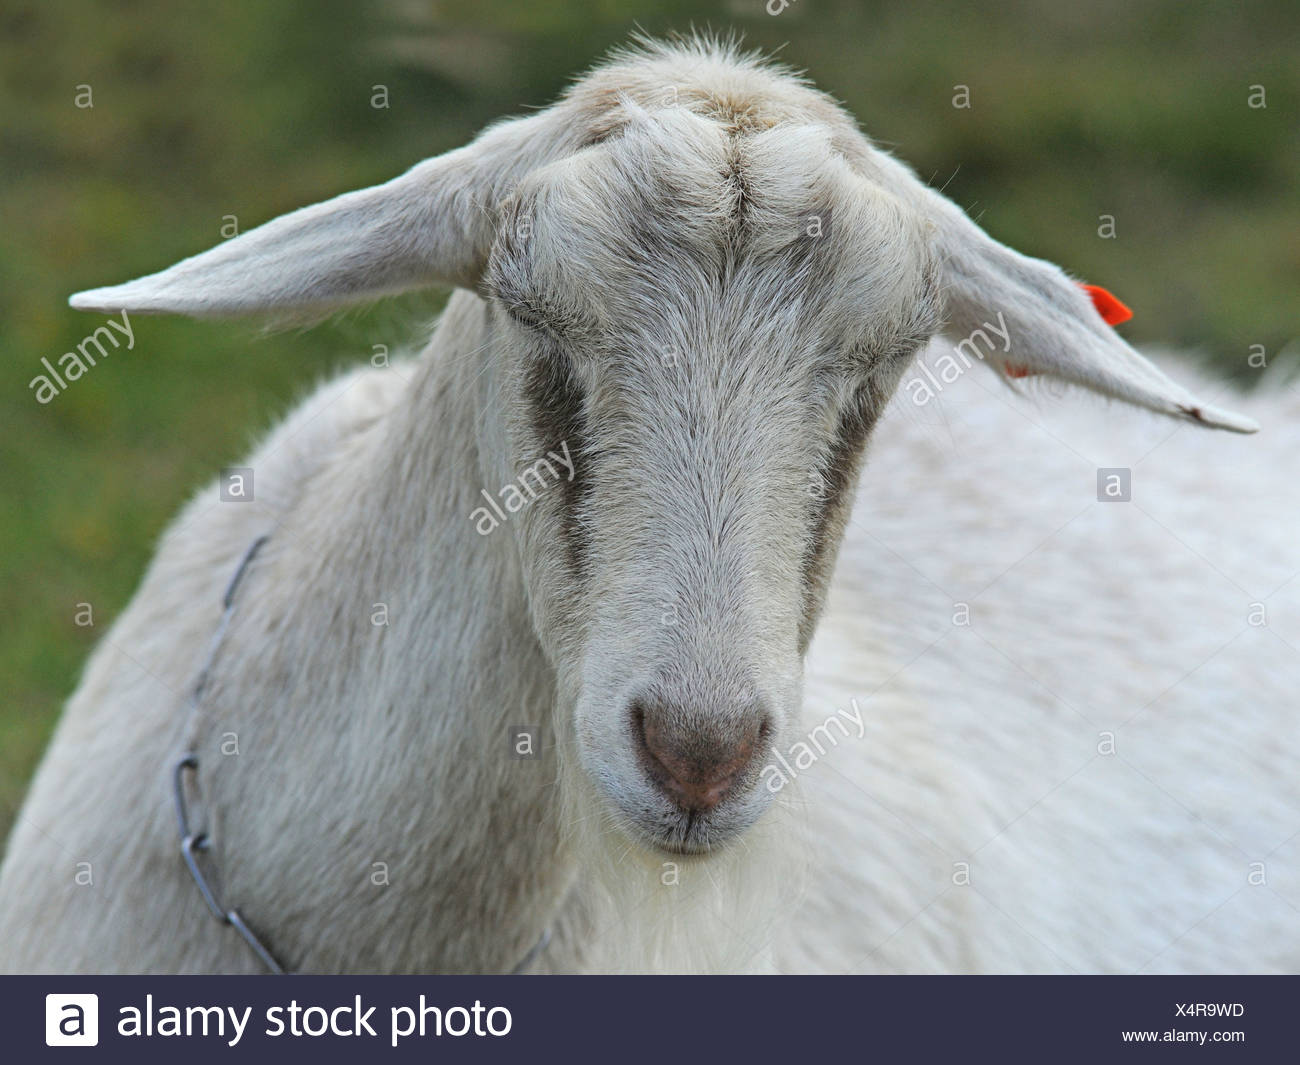 The head of a British Saanen goat - Stock Image